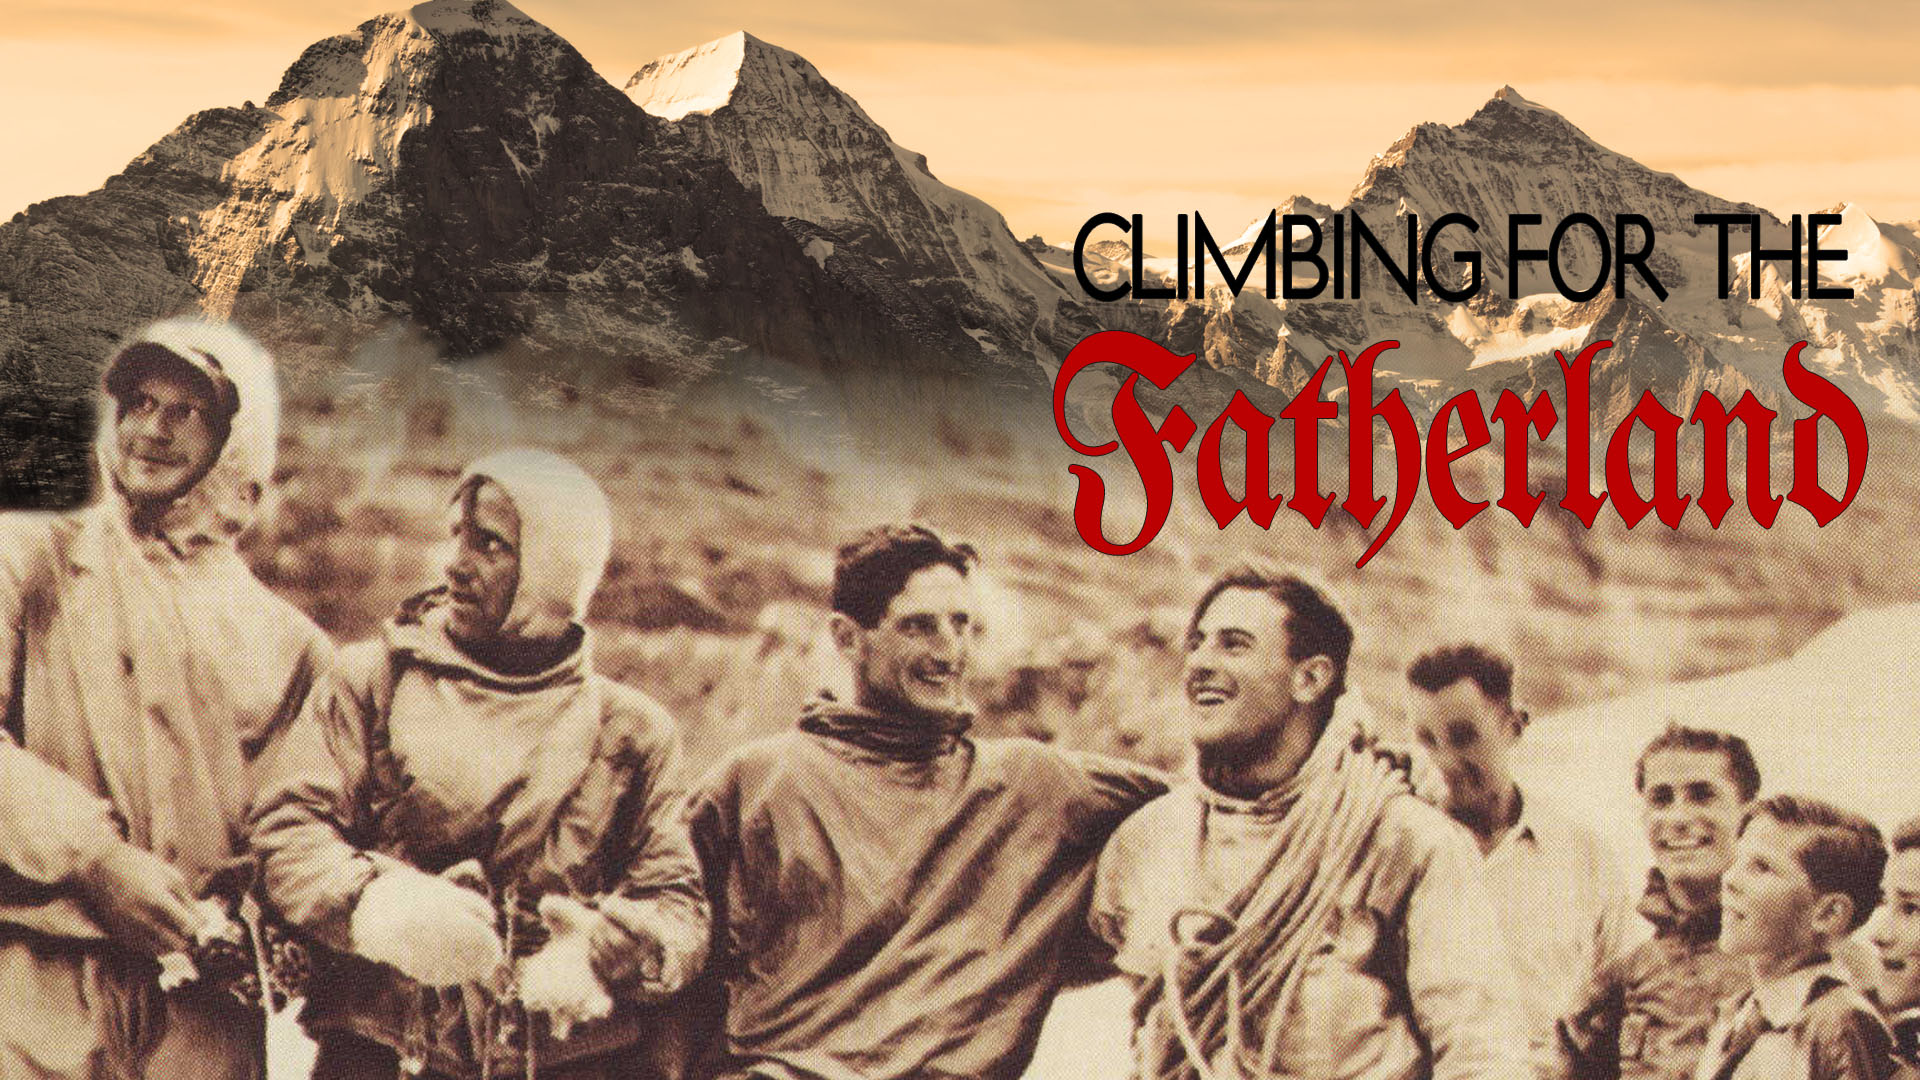 Climbing for the Fatherland  -